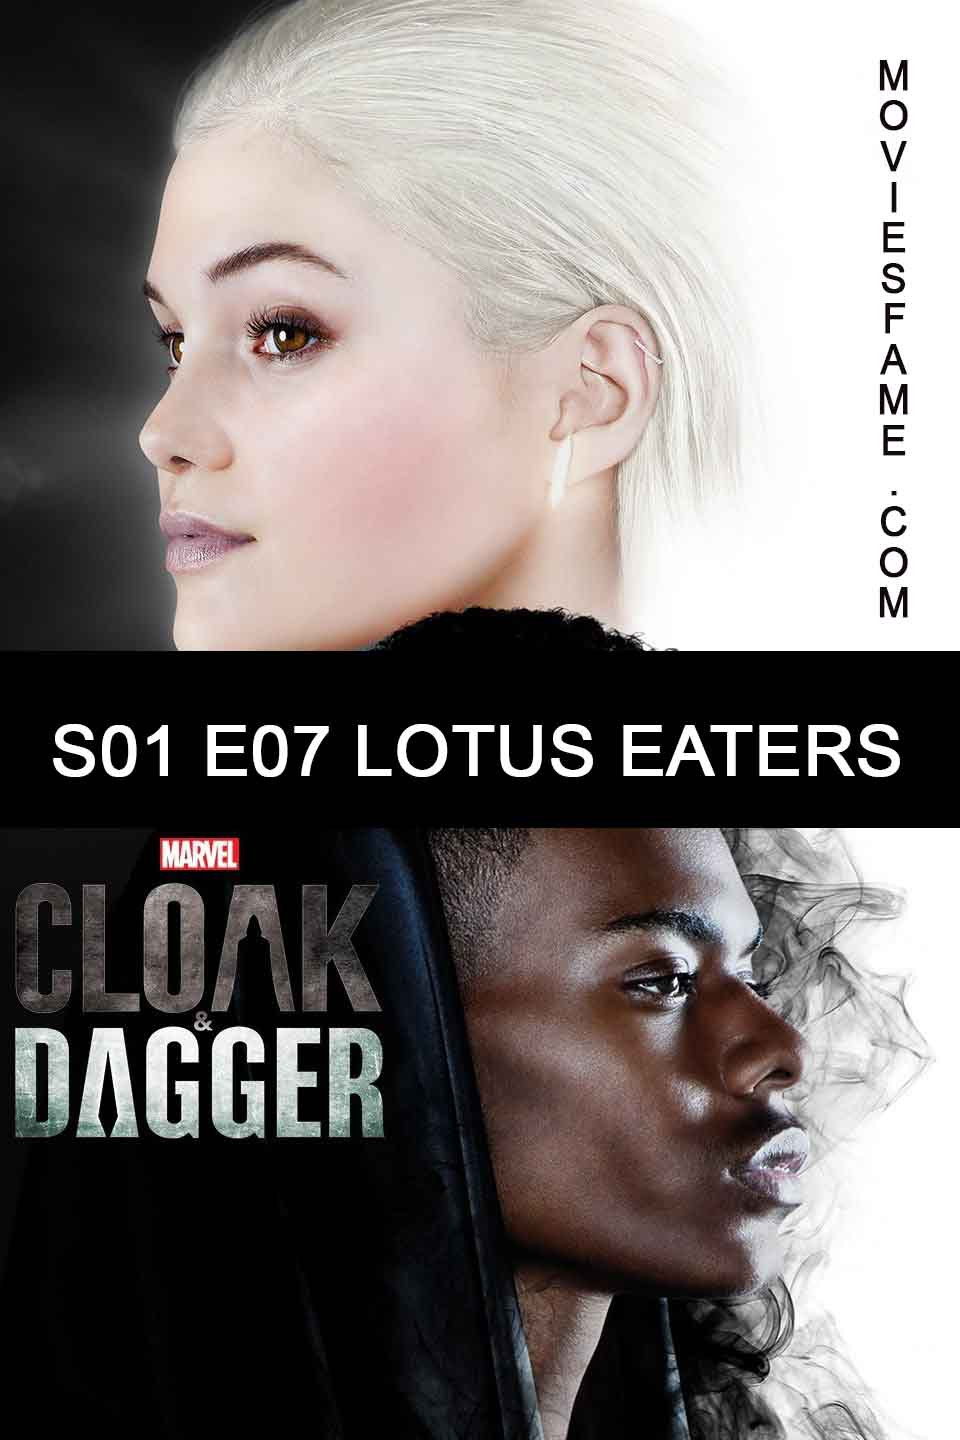 Marvel's Cloak and Dagger Season 1  Episode 7 Lotus Eaters Watch Online thumbnail